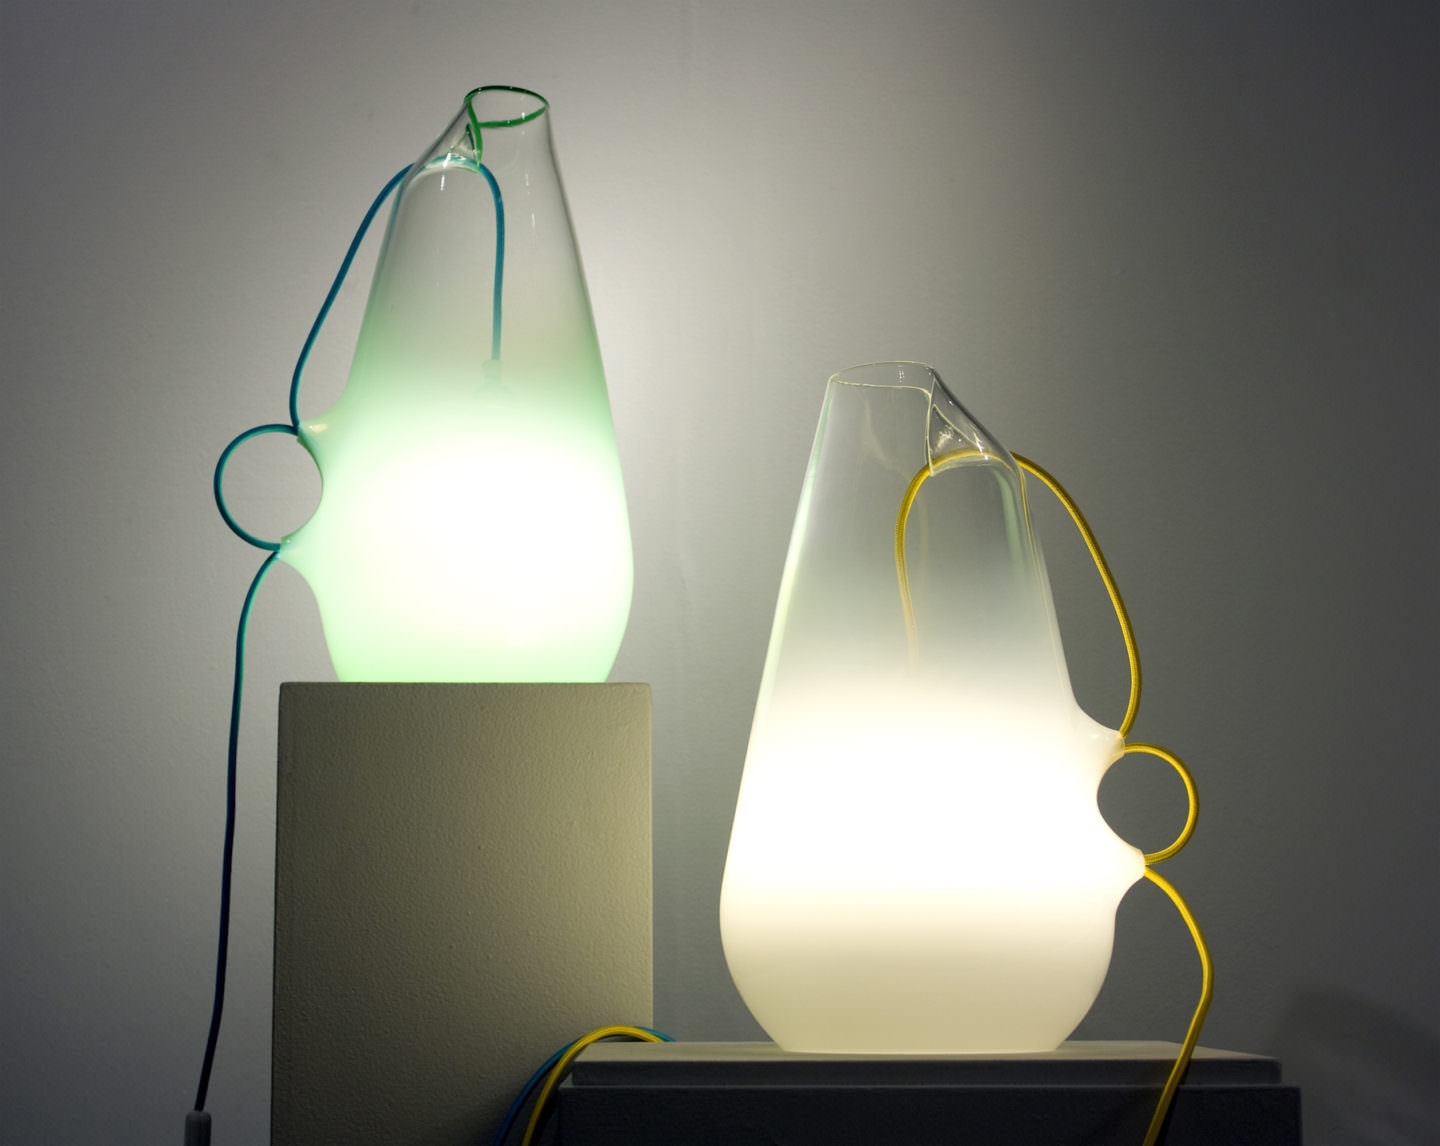 Glass Lights by Brad Turner titled Traden Lamps